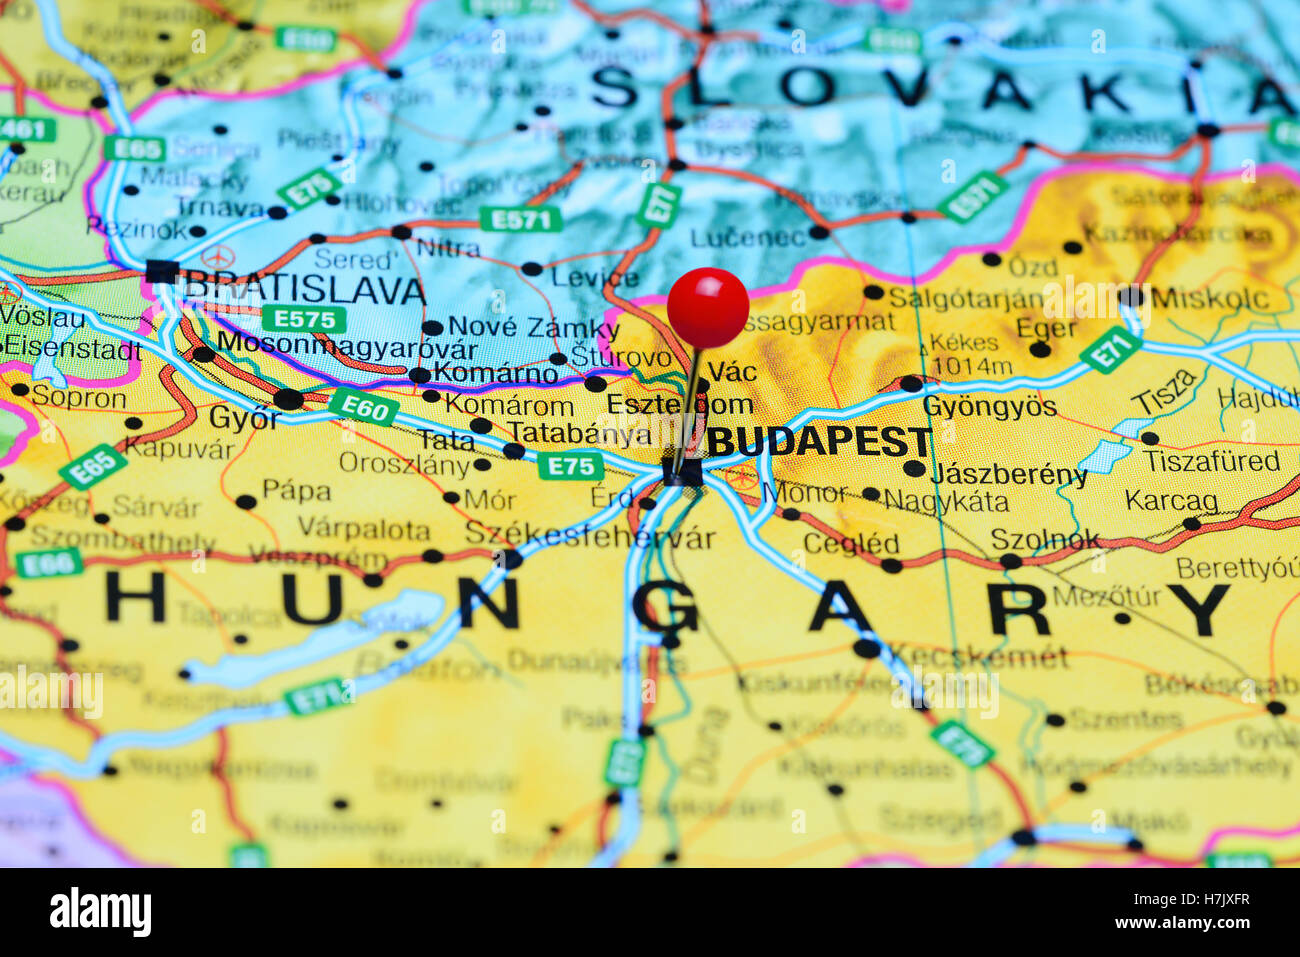 Budapest pinned on a map of hungary stock photo royalty free budapest pinned on a map of hungary gumiabroncs Images